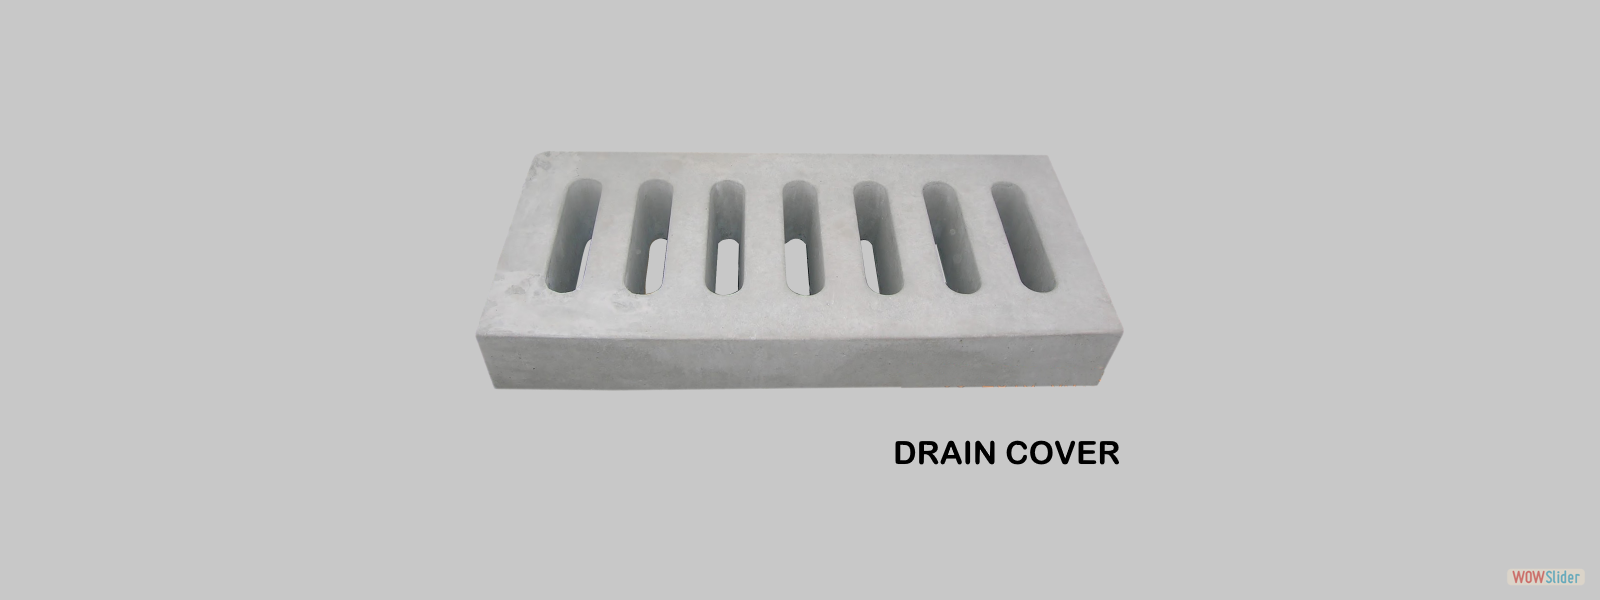 draincover